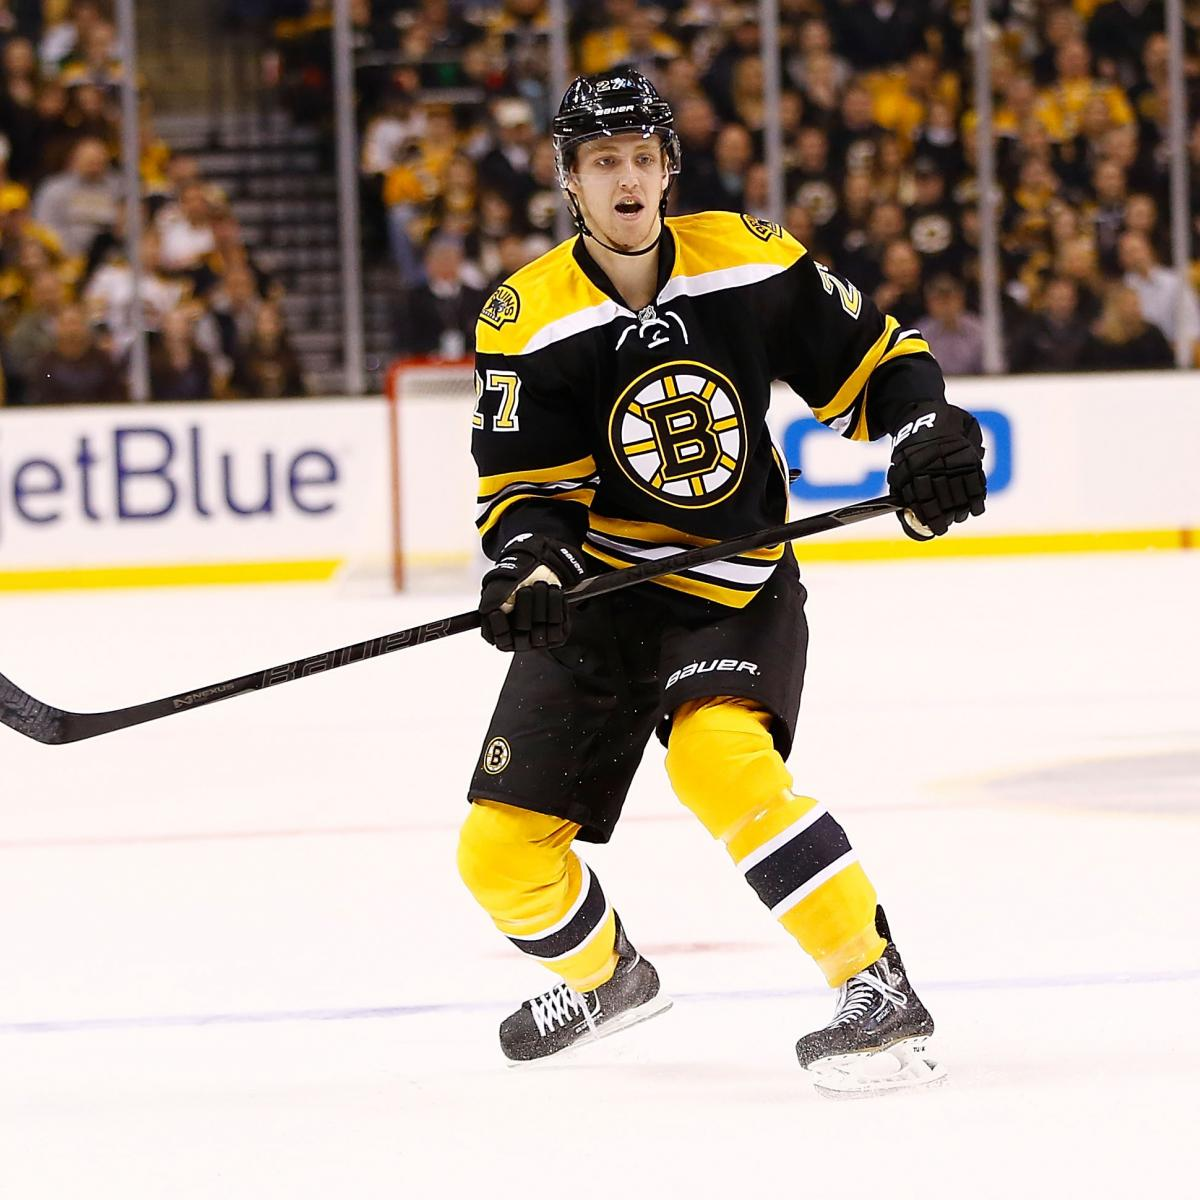 5-Year Projection For Boston Bruins Defenseman Dougie